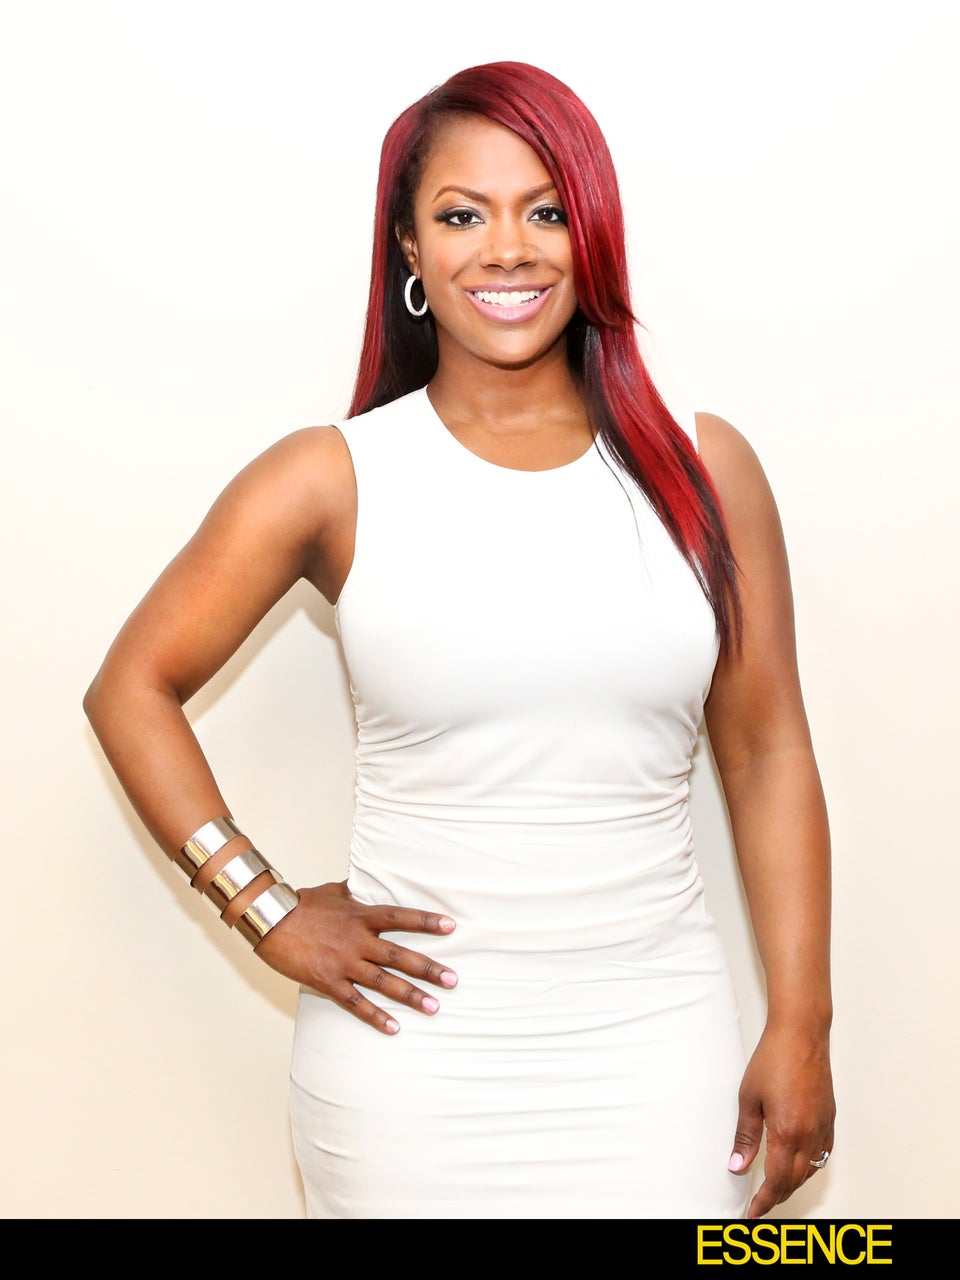 EXCLUSIVE: Watch Kandi Burruss Discuss 'Kandi Factory' and Criticism Over New Gospel Song